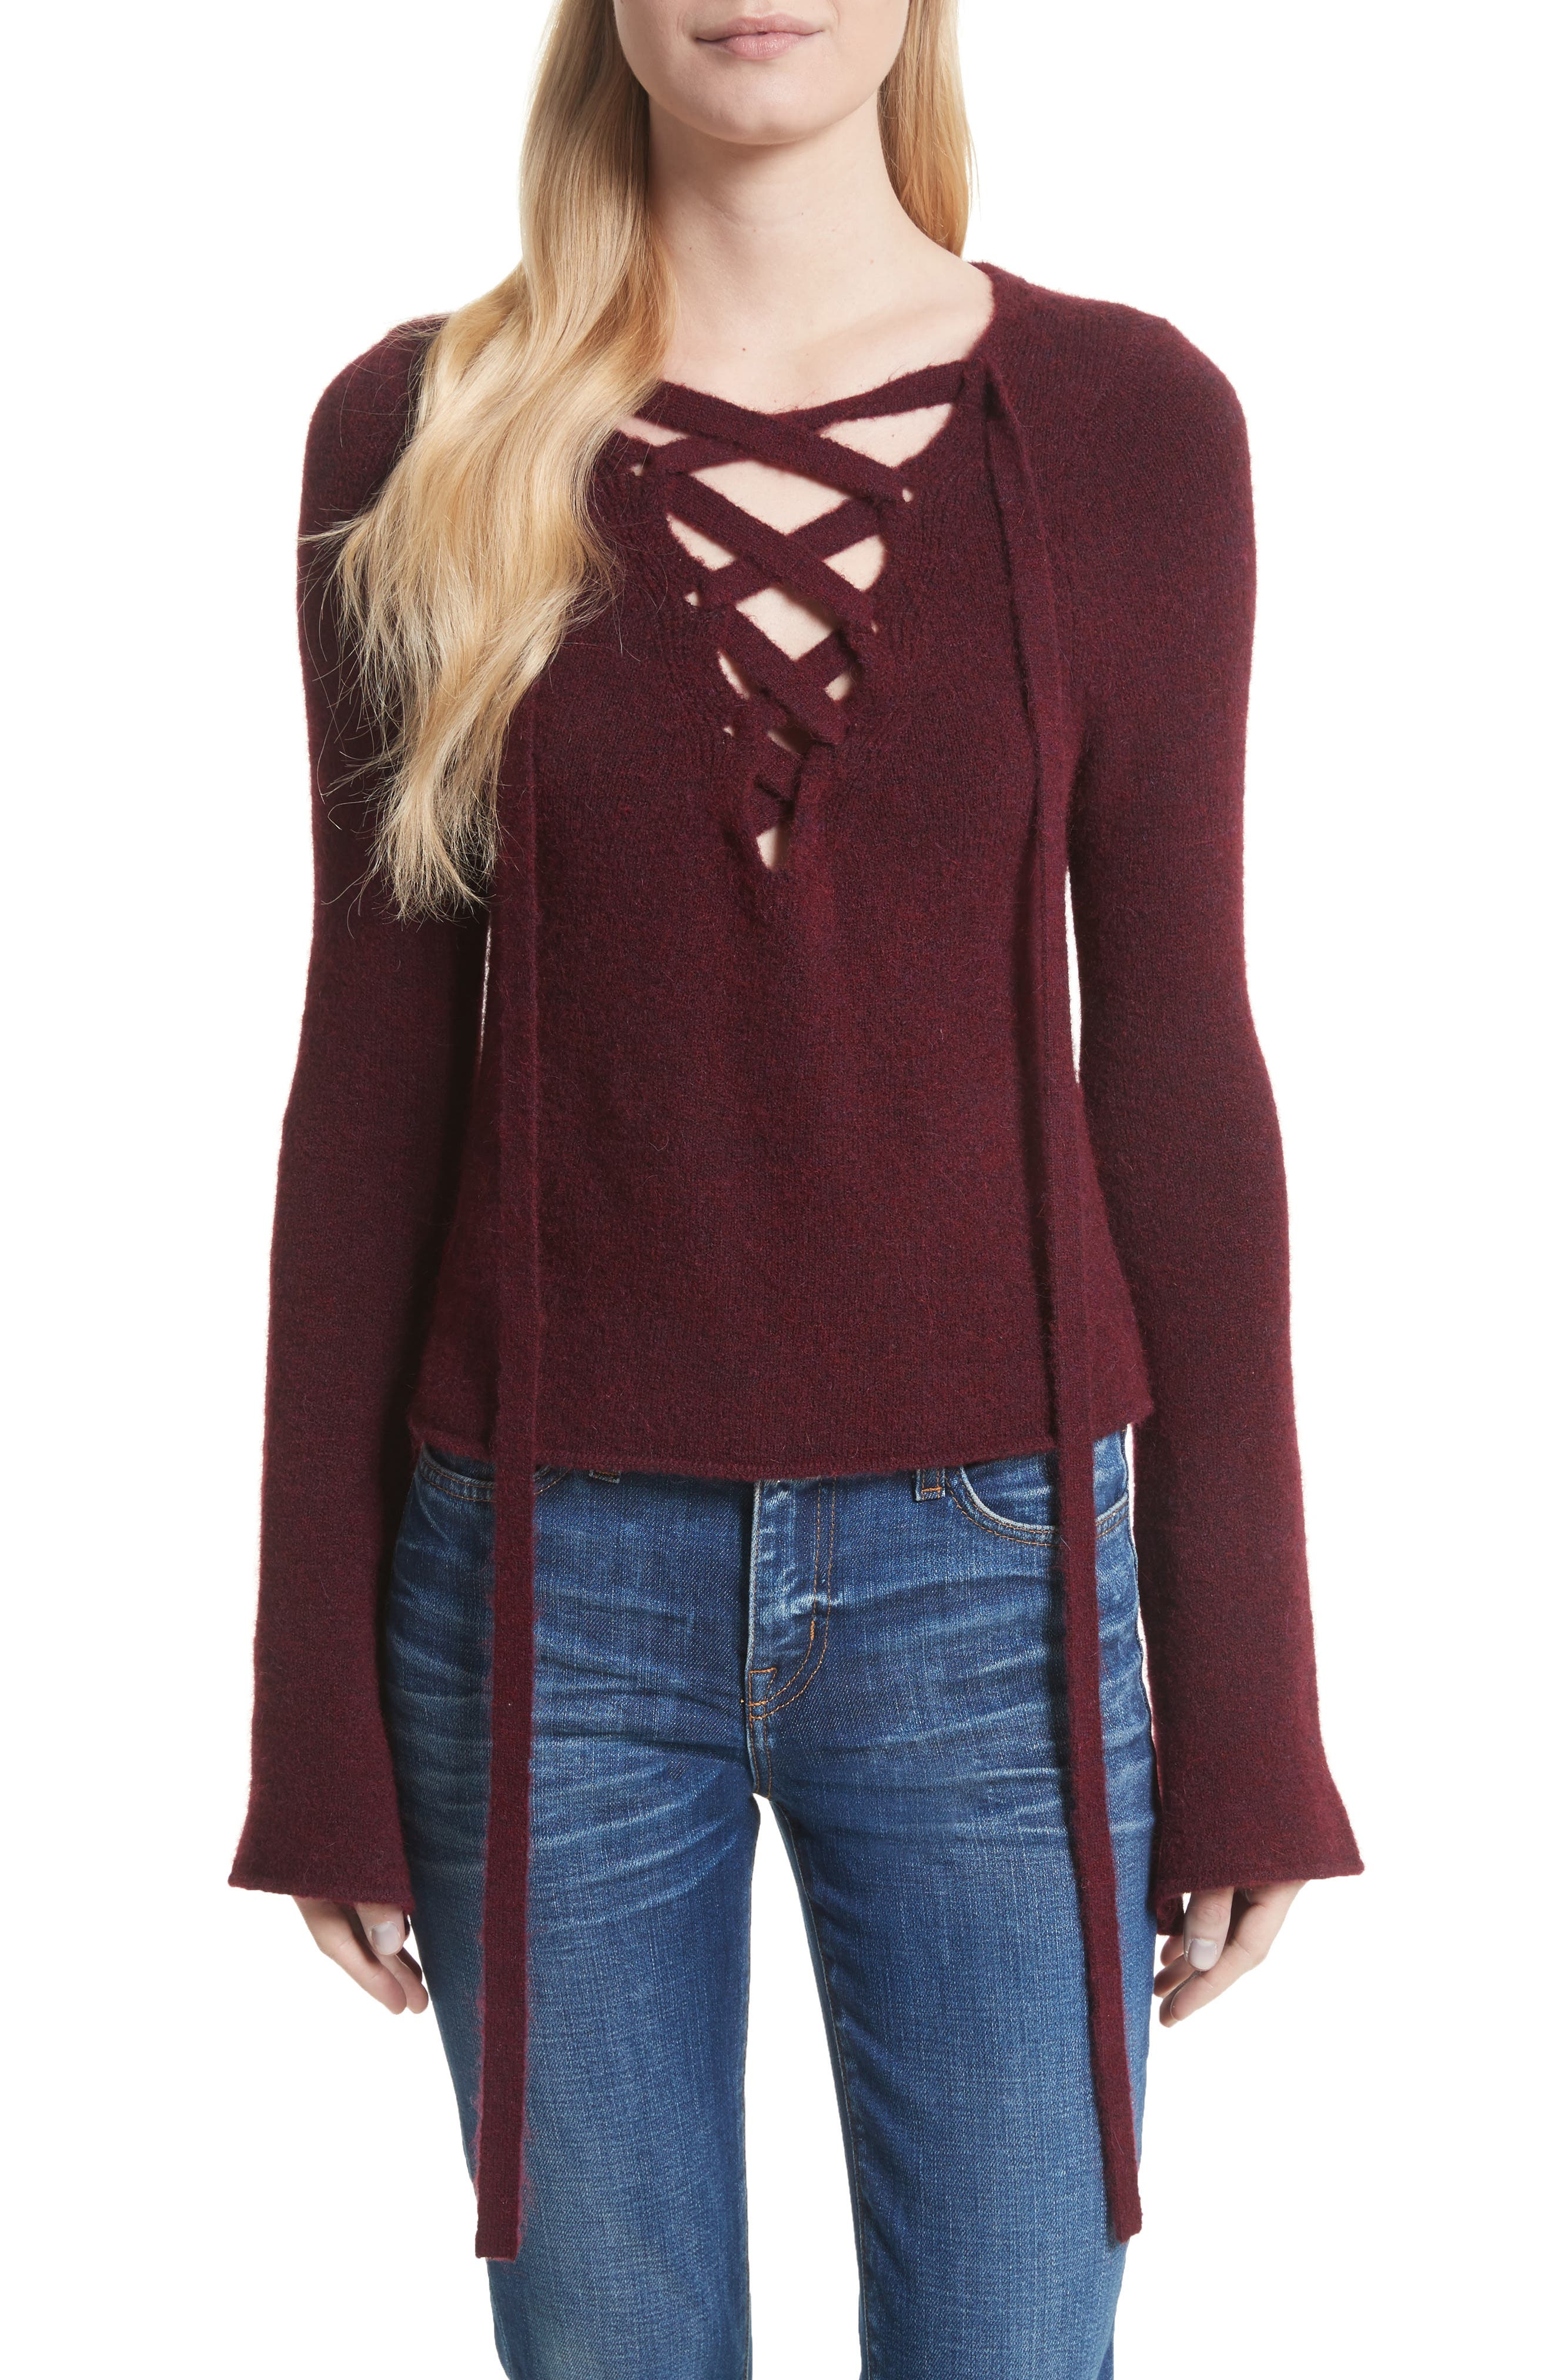 Candela Lace-Up Sweater,                             Main thumbnail 1, color,                             600